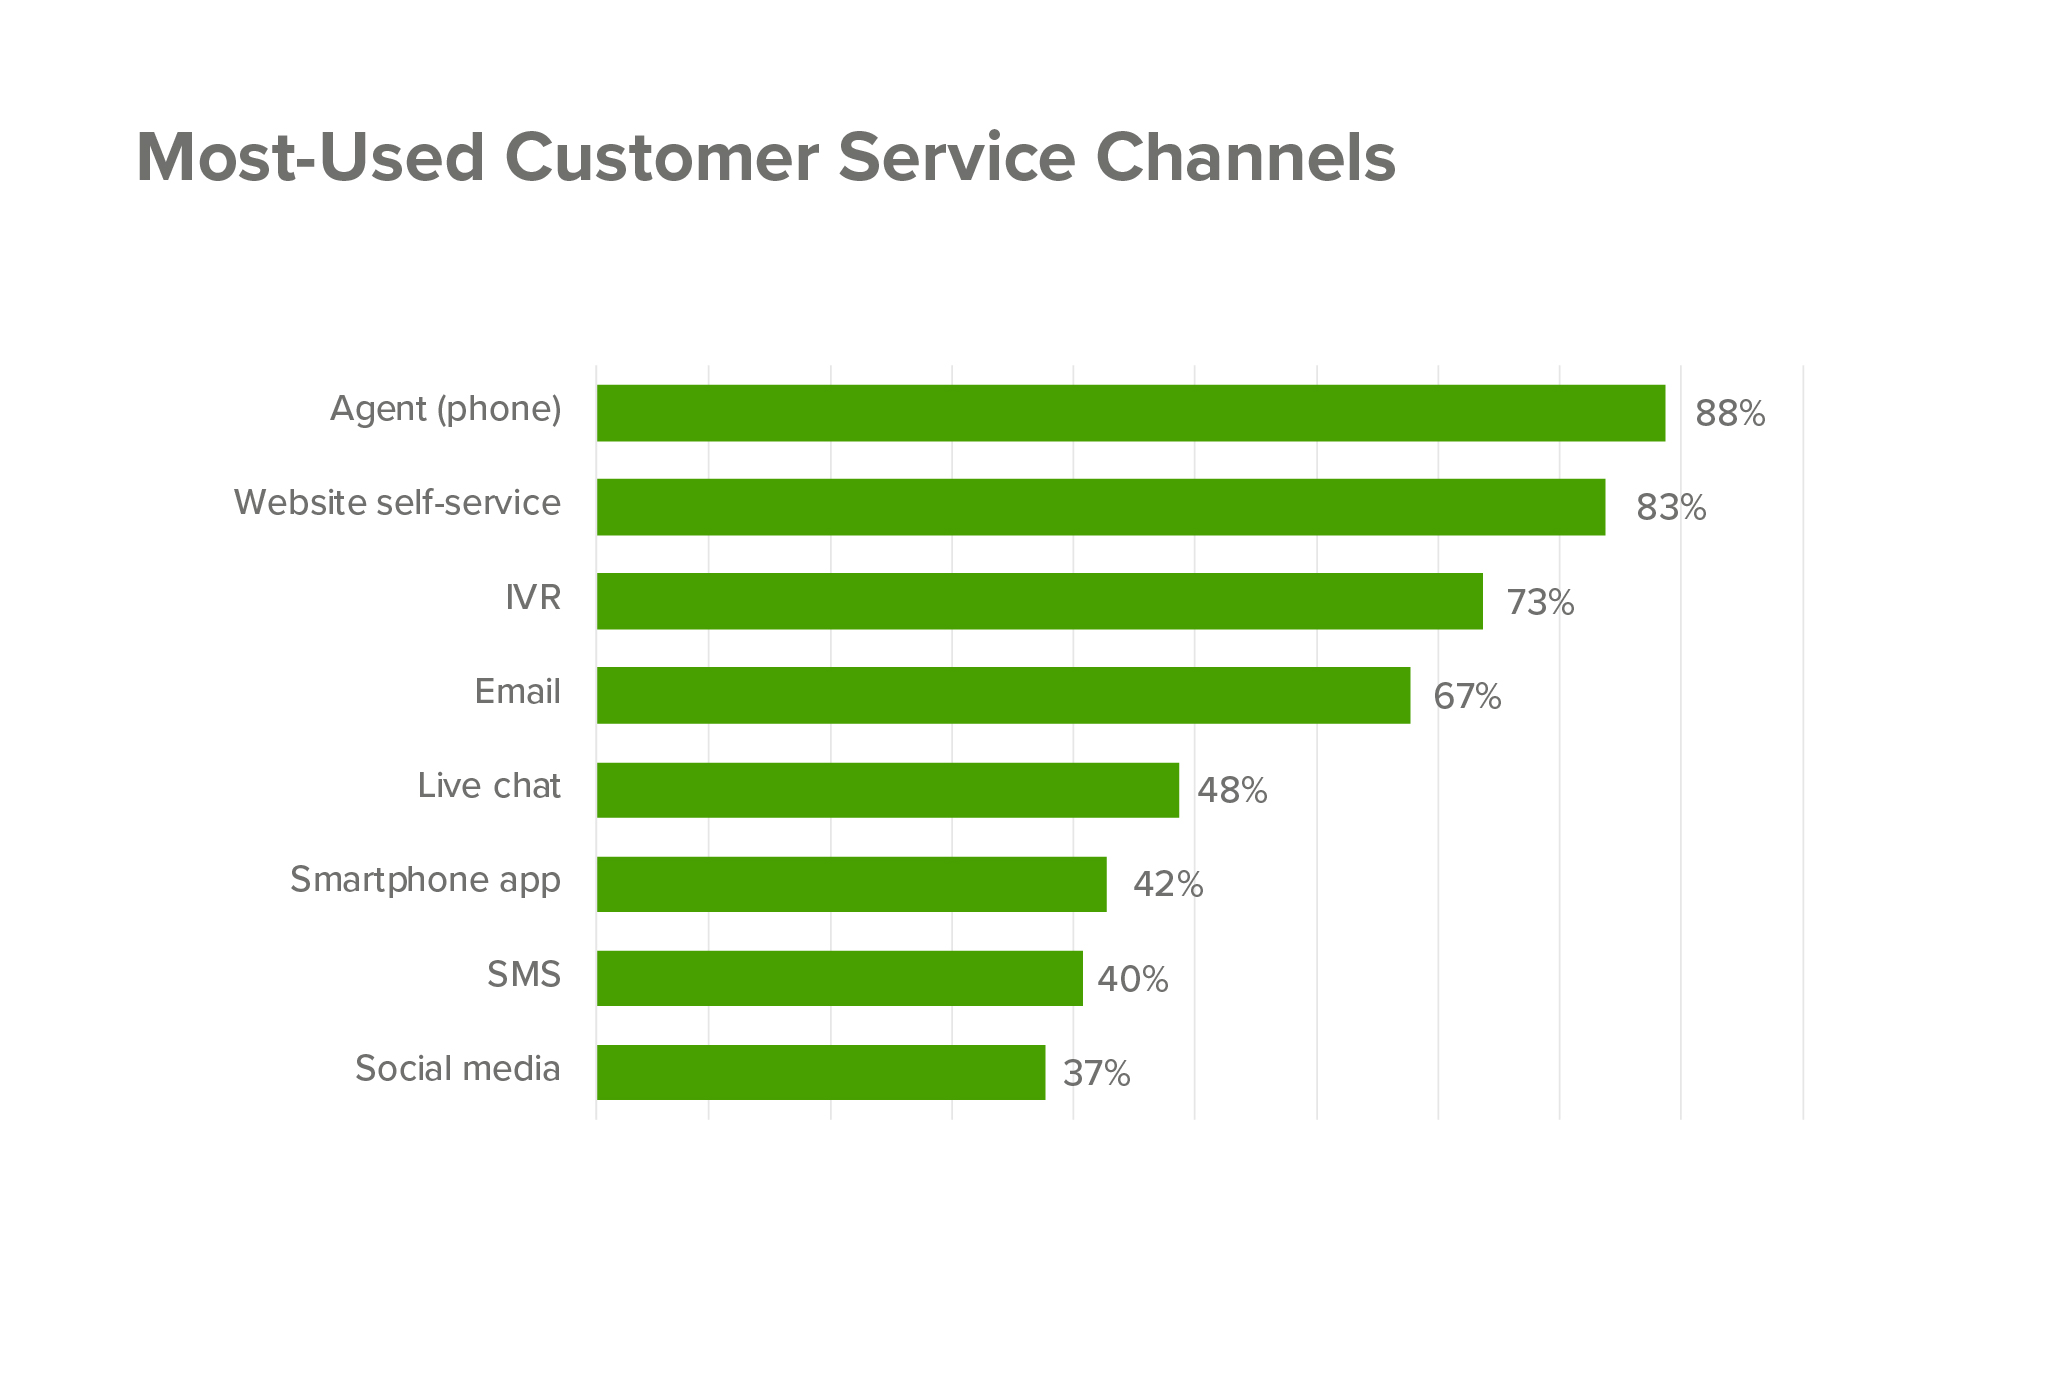 Most used customer service channels